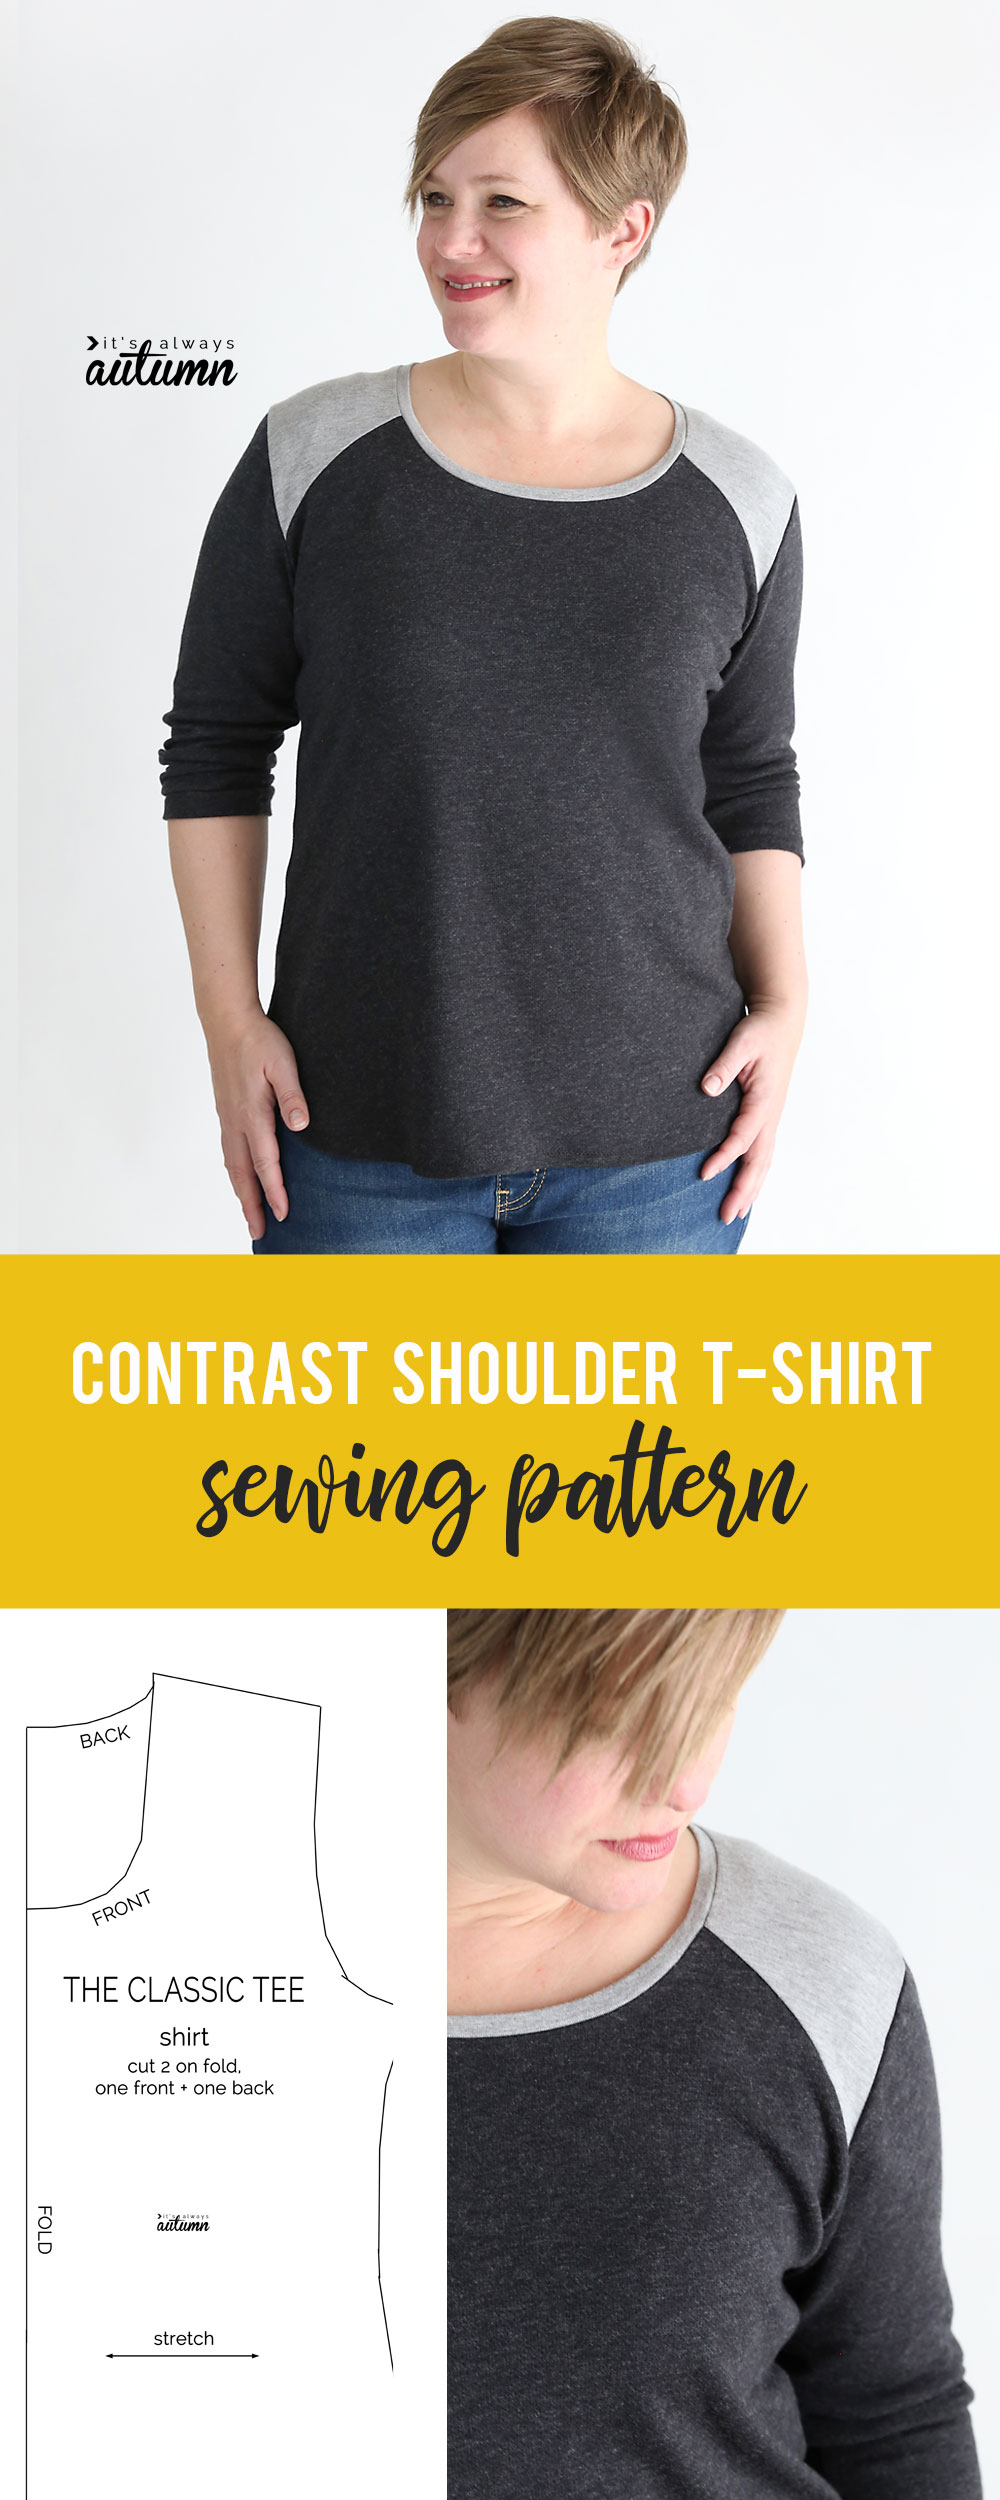 Woman wearing shirt made from the contrast shoulder t-shirt sewing pattern